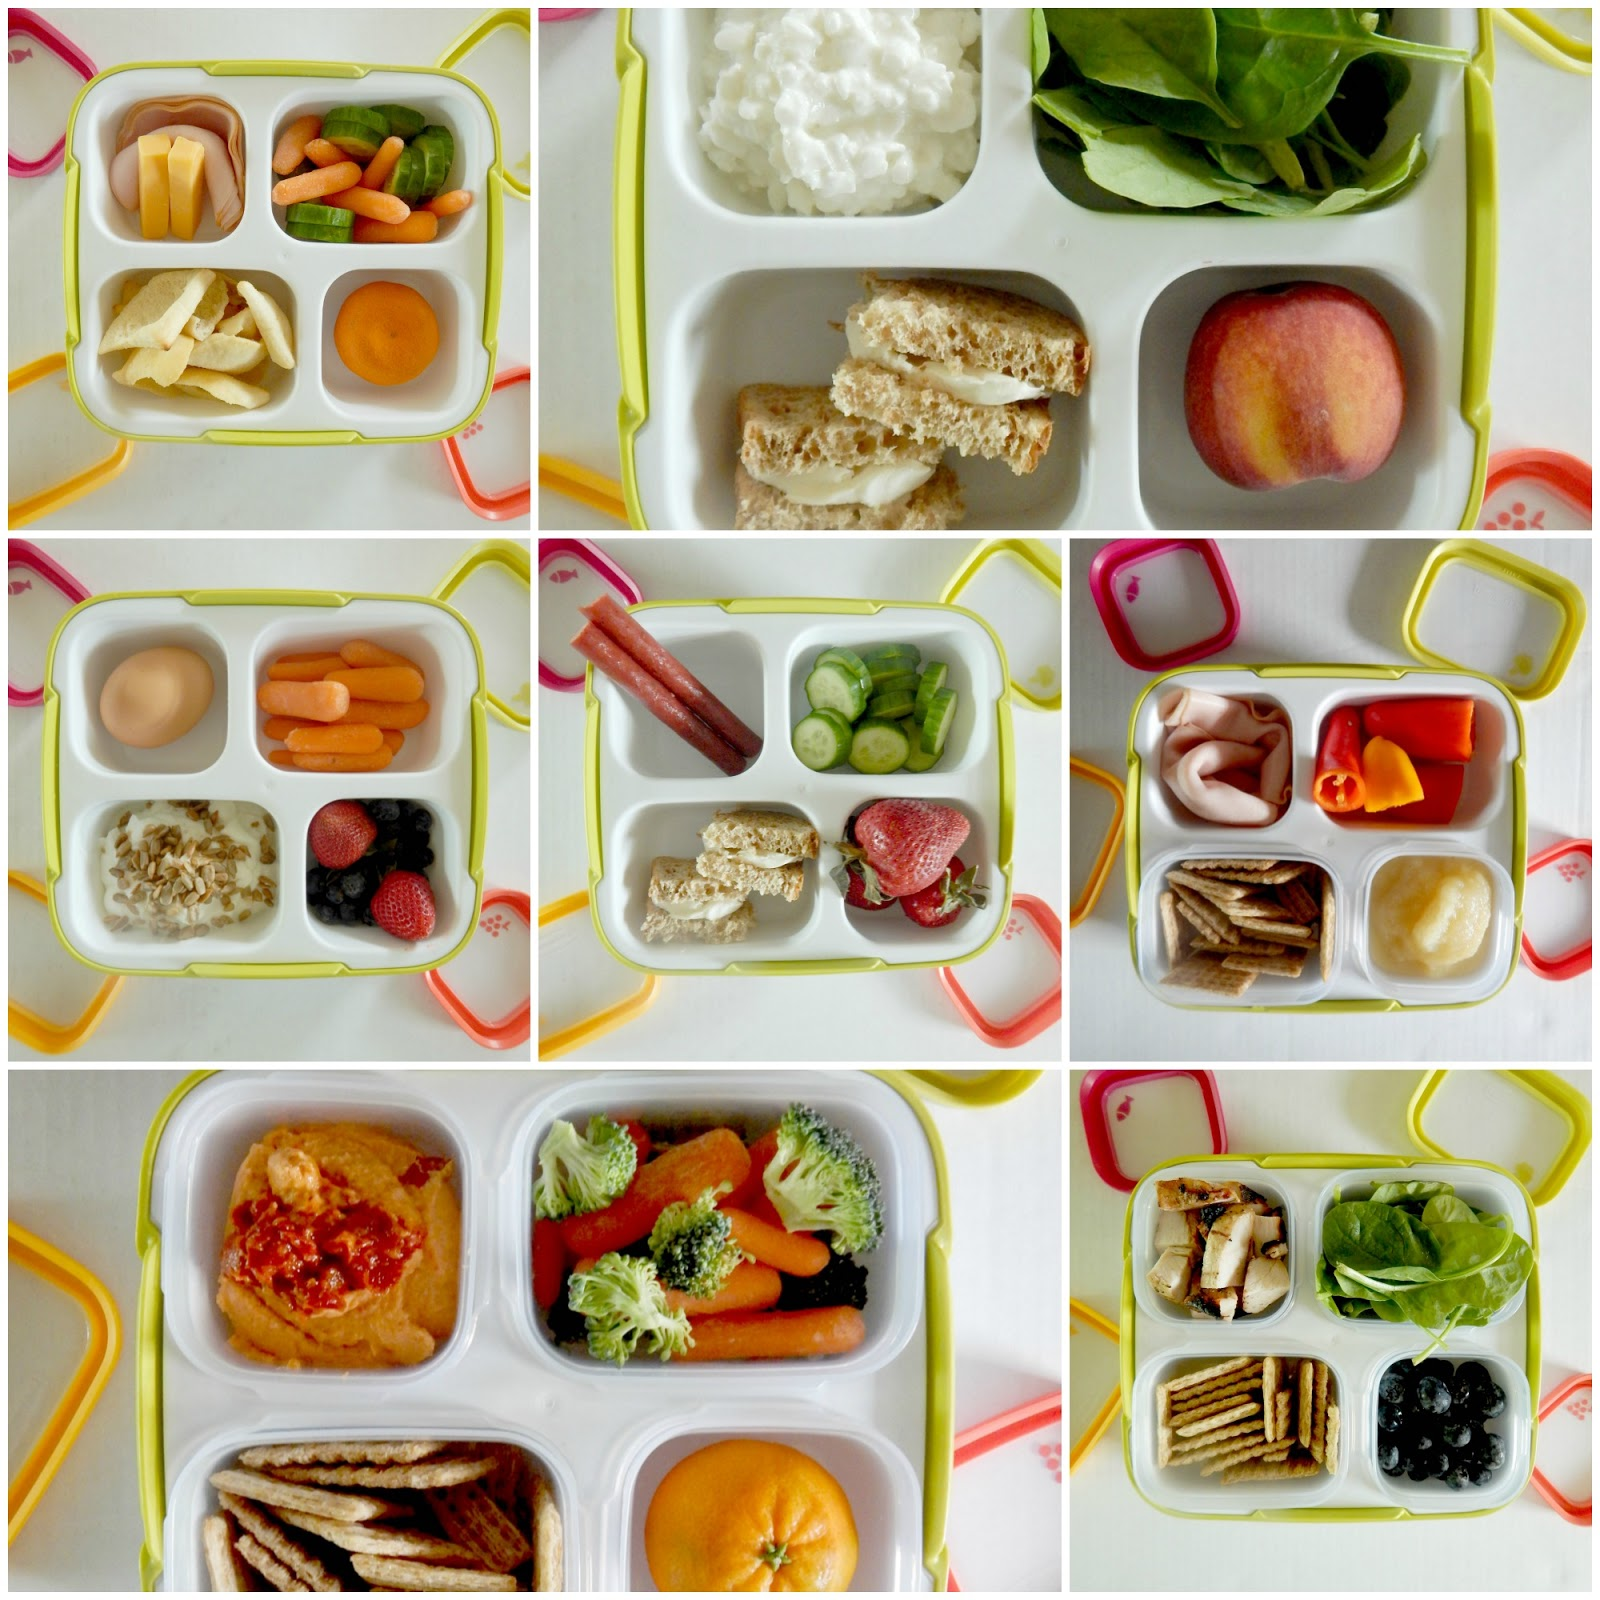 Ally's Sweet & Savory Eats: 7 Healthy Weight Loss Lunches ...